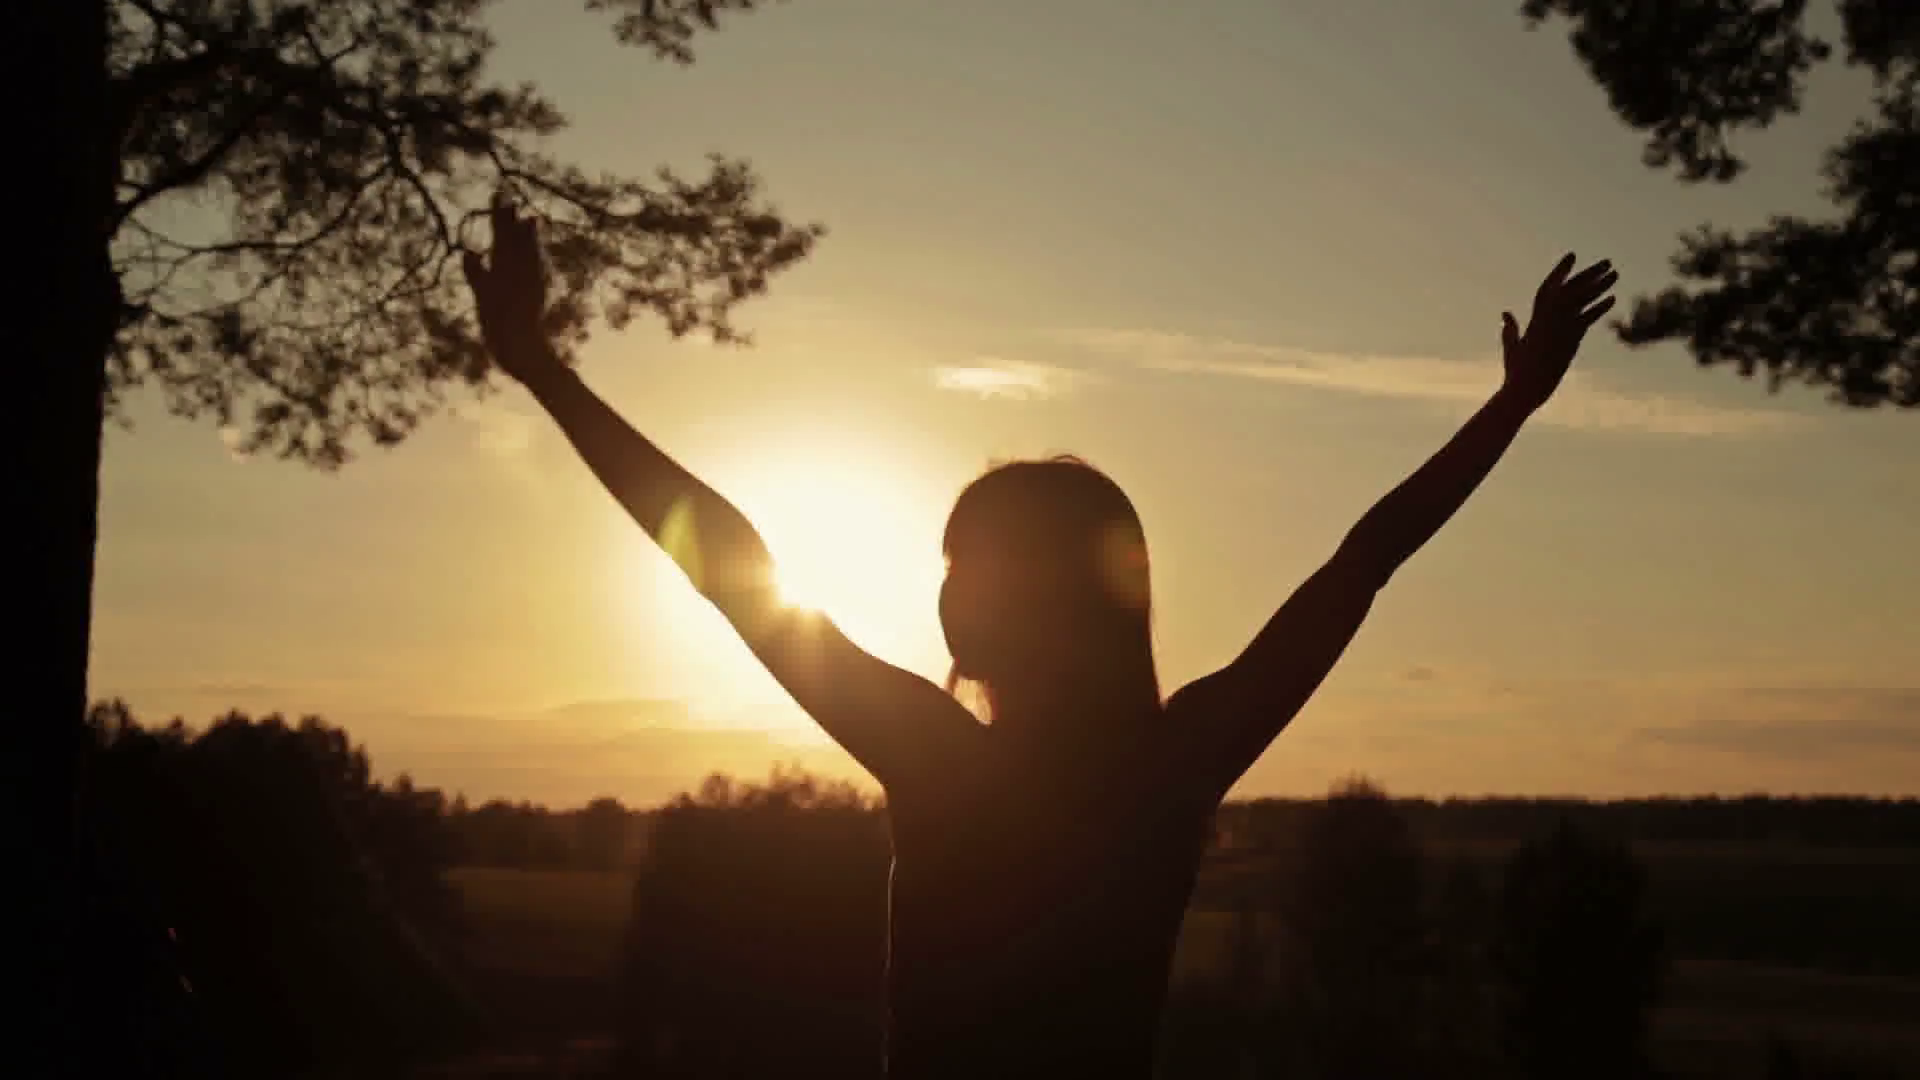 happy-young-woman-silhouette-against-bright-golden-sunset-lifts-hands-up-in-air-sunset-light-sun-lens-flares-golden-hour-freedom-and-happiness-concept_hcyqknco_thumbnail-full05.png